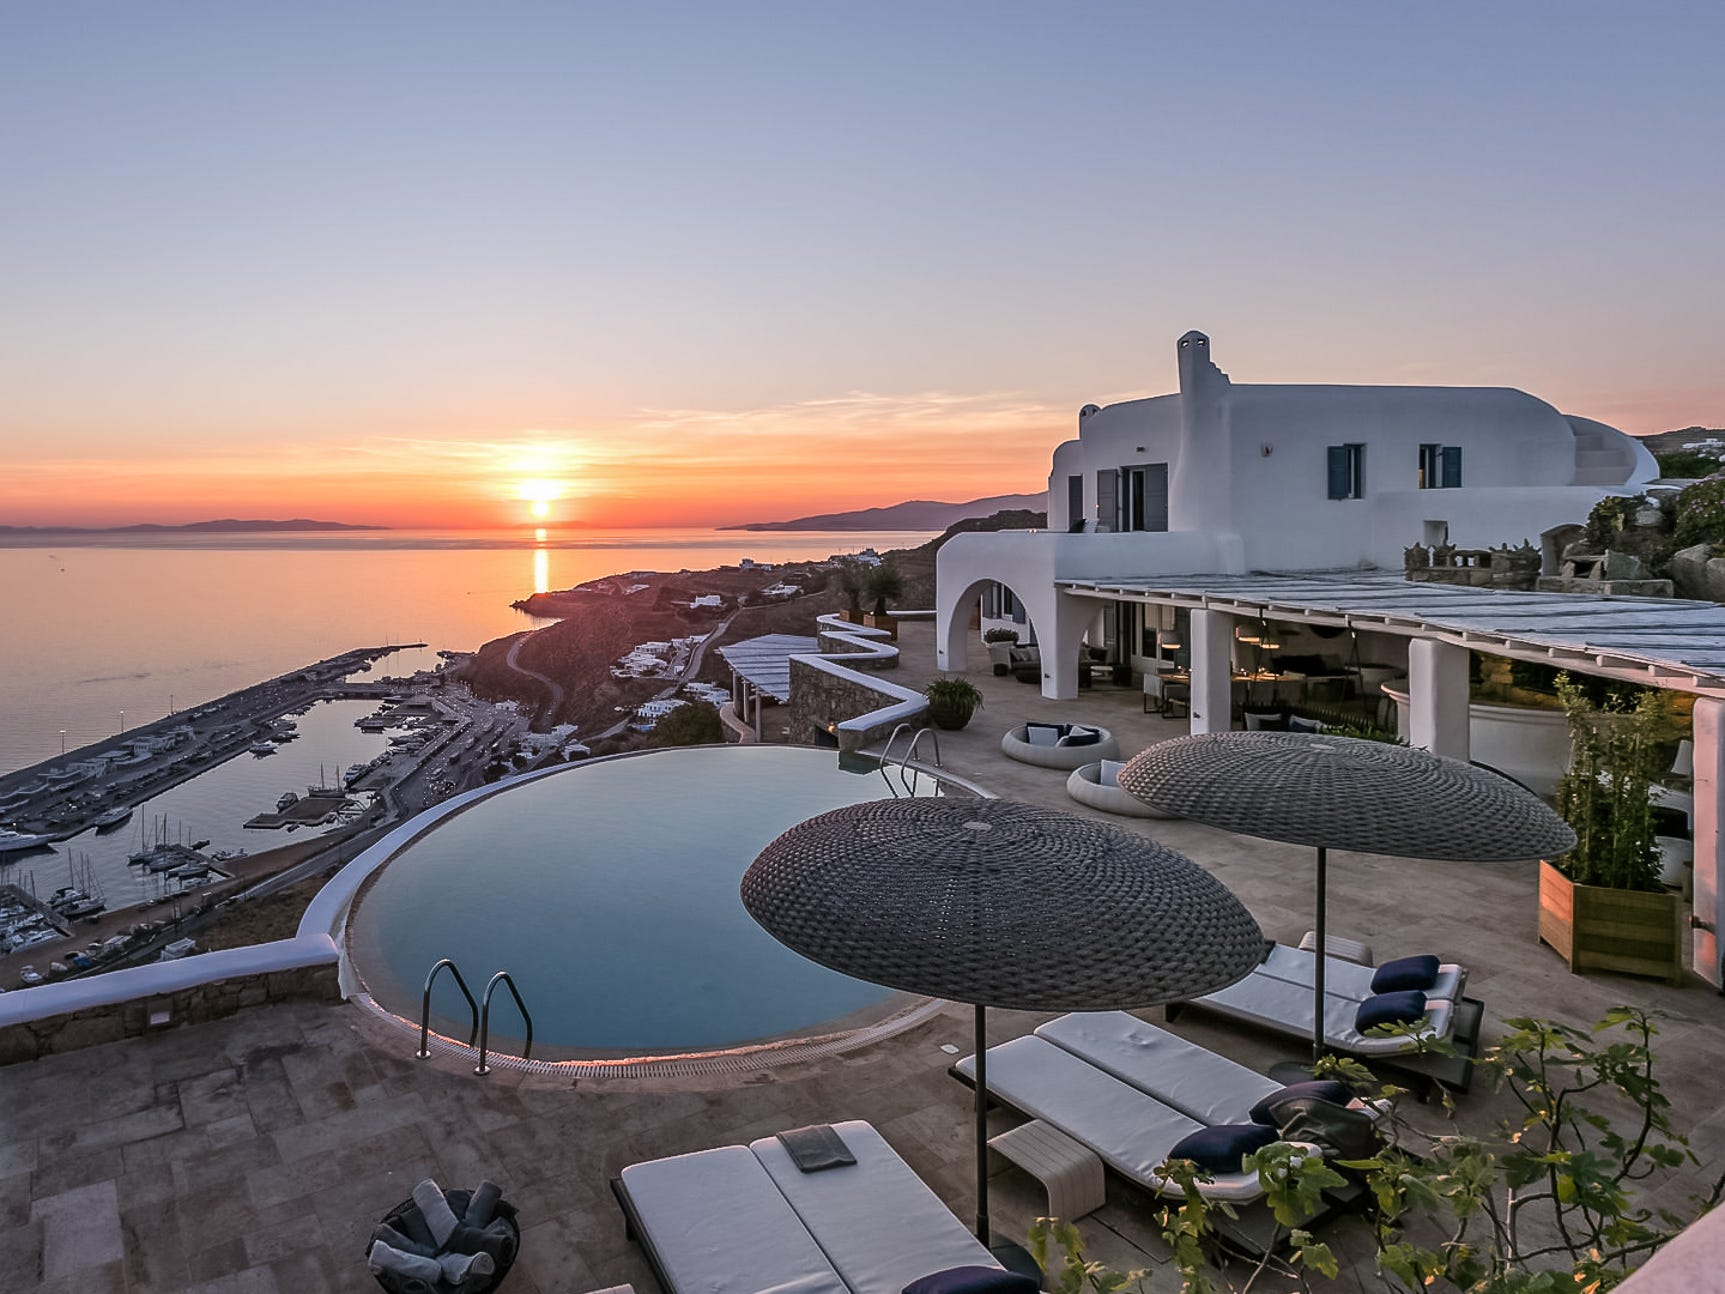 This seven-bedroom property in Mykonos, Greece, sleeps 14 and rents for $7,008 - $14,945 a night.